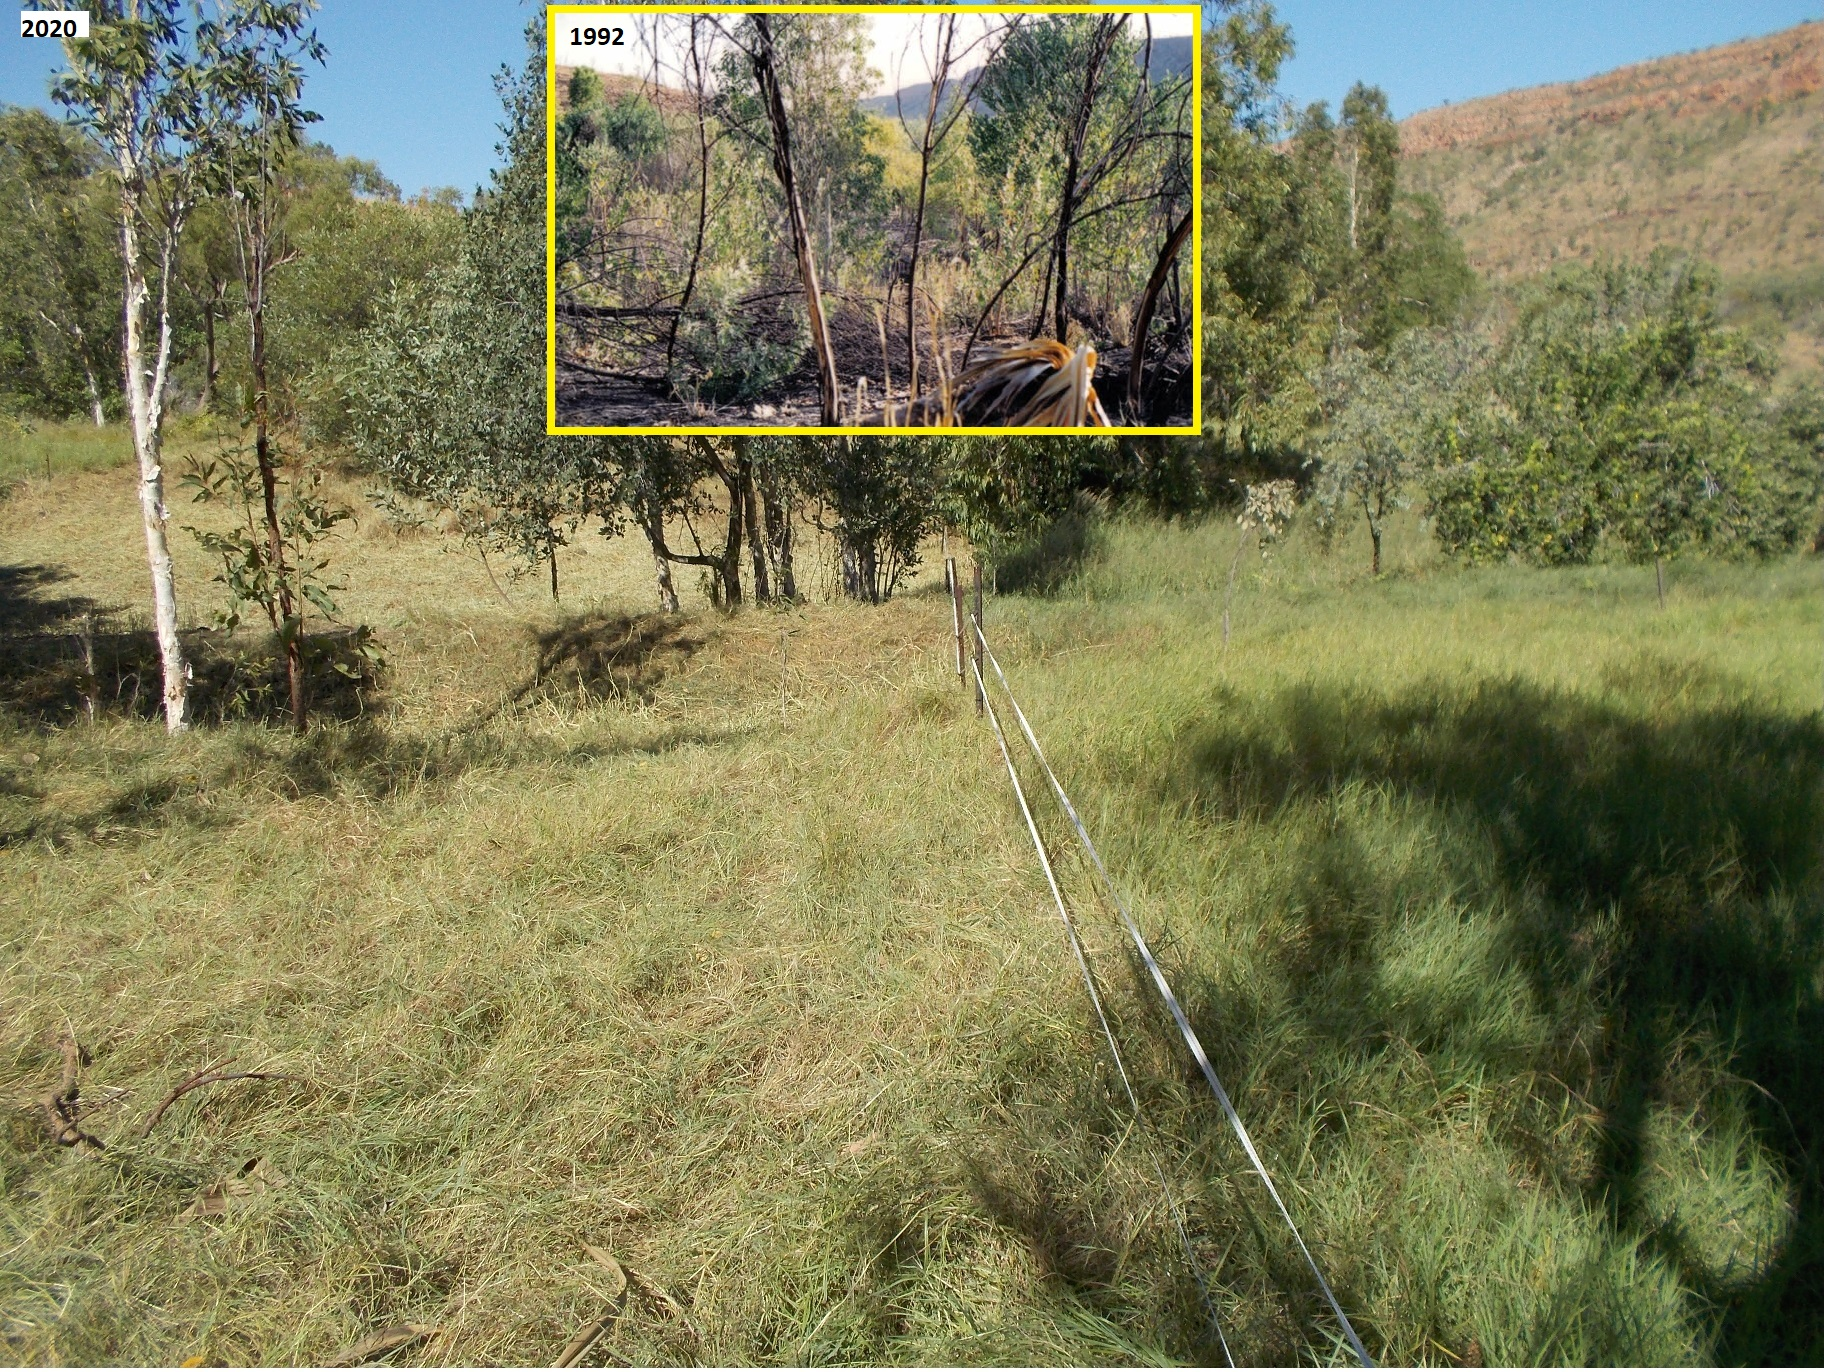 Feeding biodiversity rather than flames (Kachana Photo Monitor Site No. 3, May 2020)